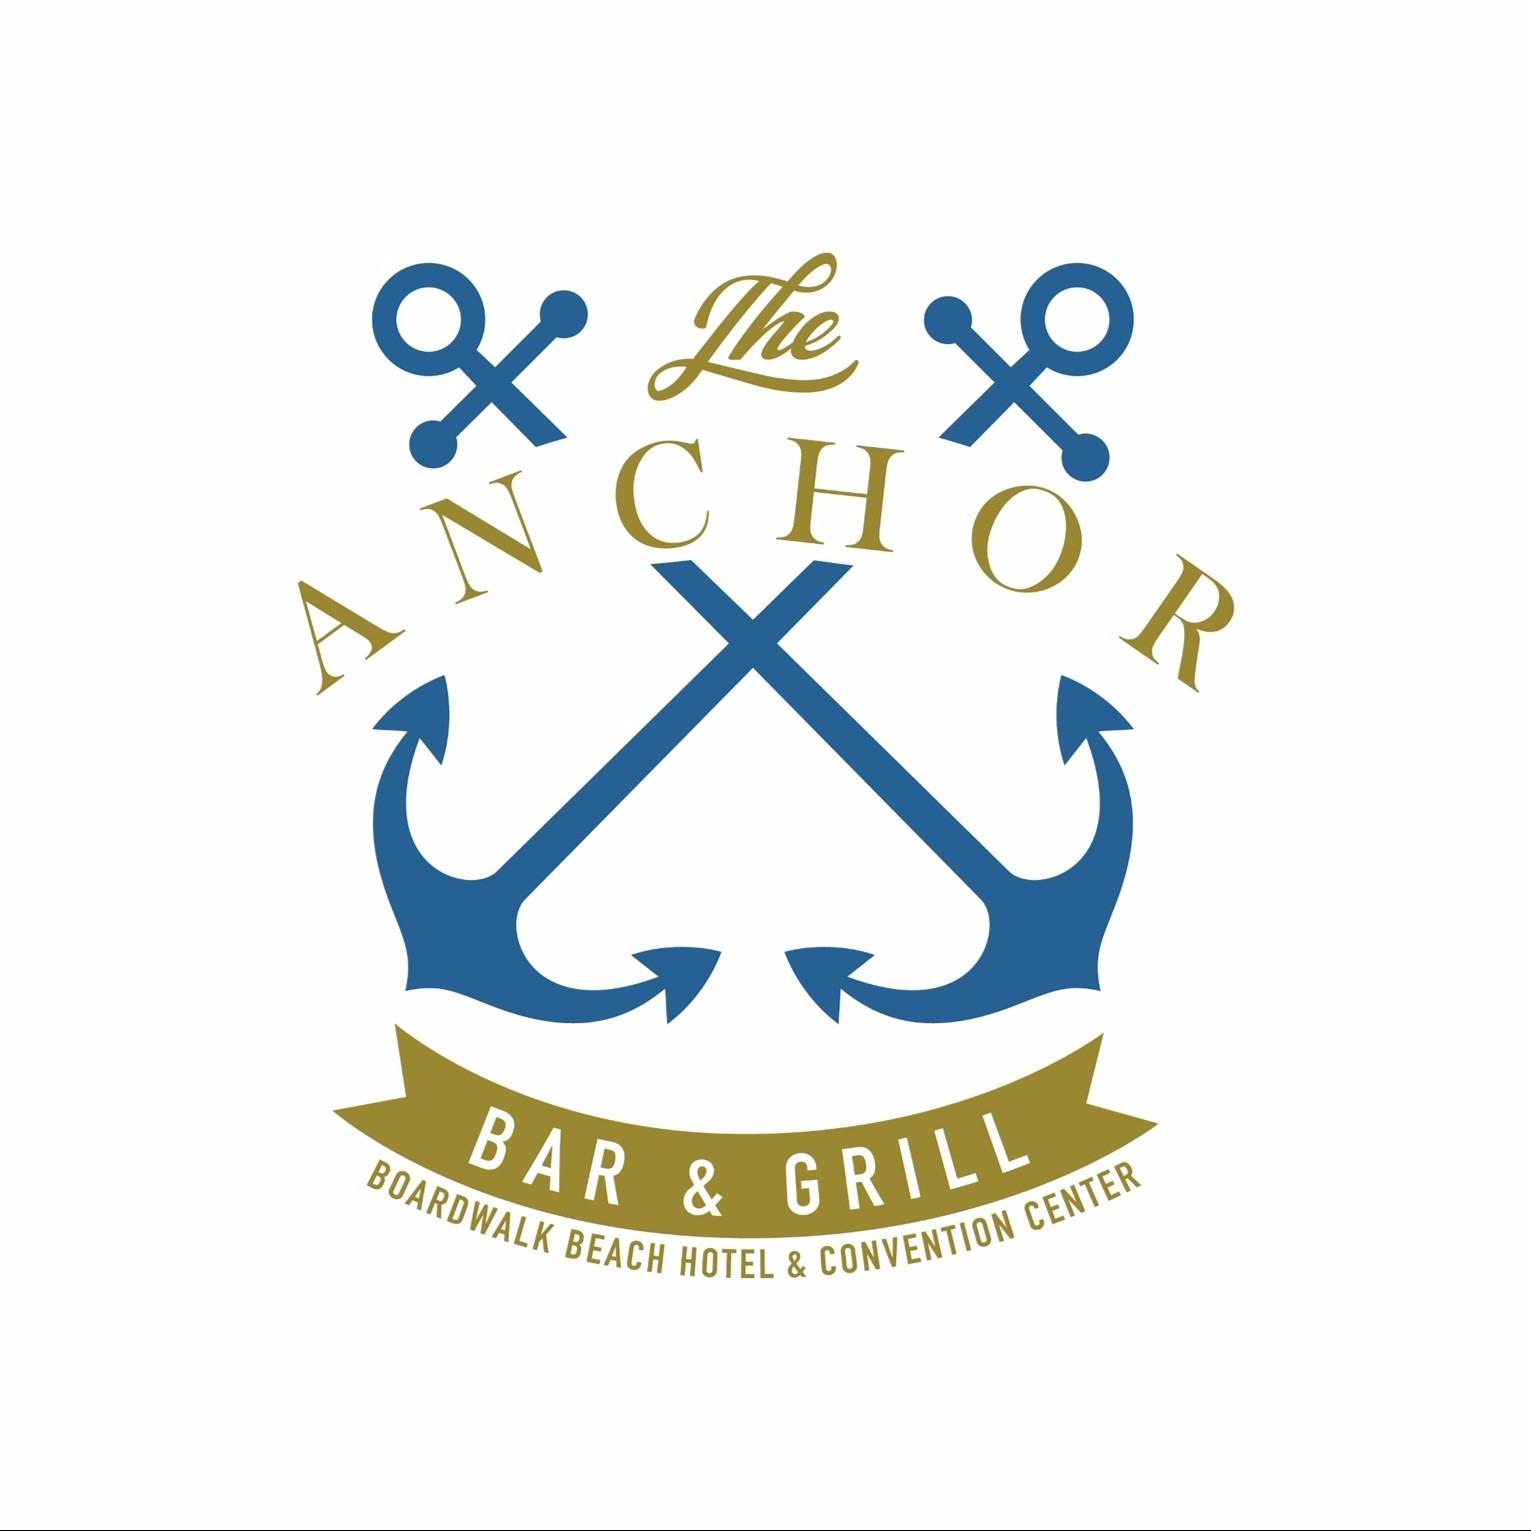 The Anchor Bar & Grill